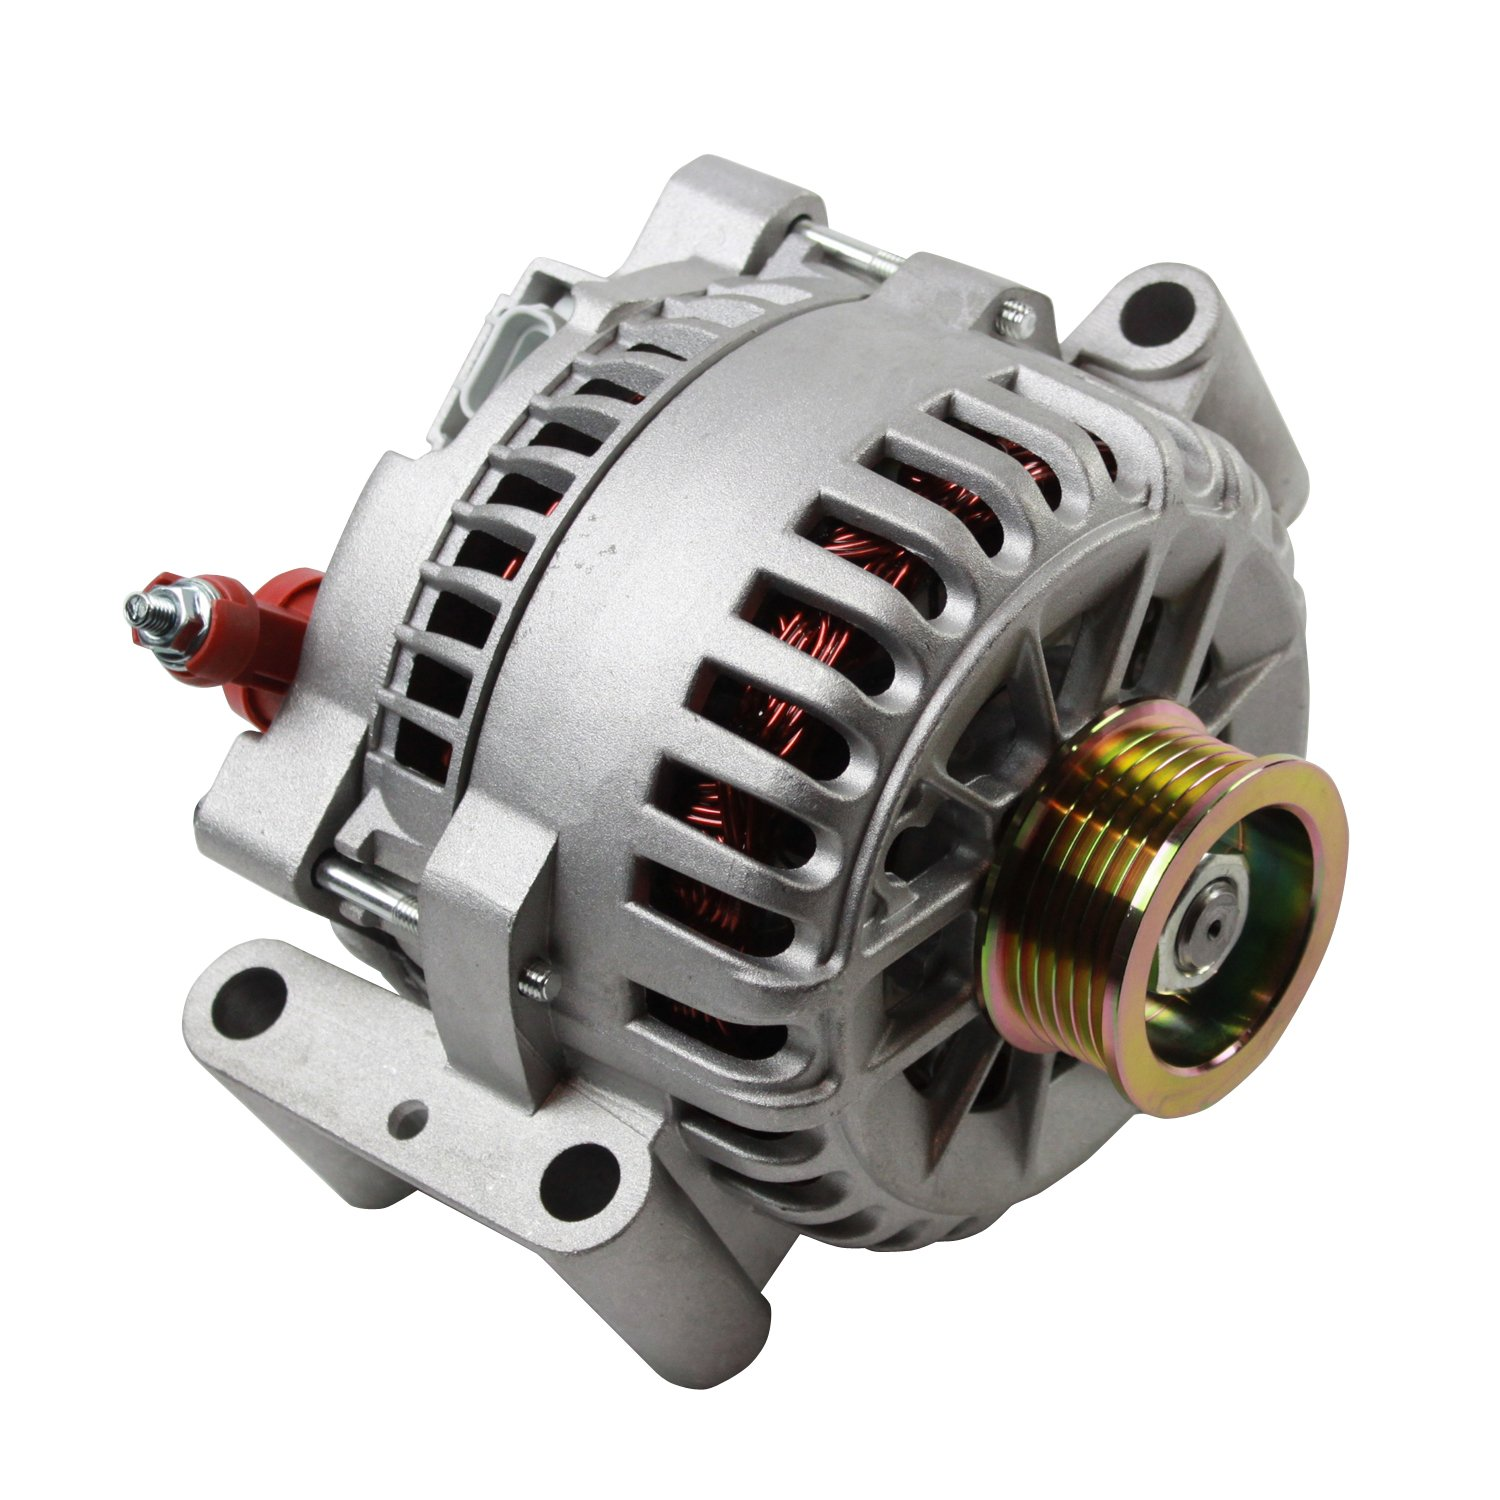 TYC 2-08437 Replacement Alternator for Ford Mustang